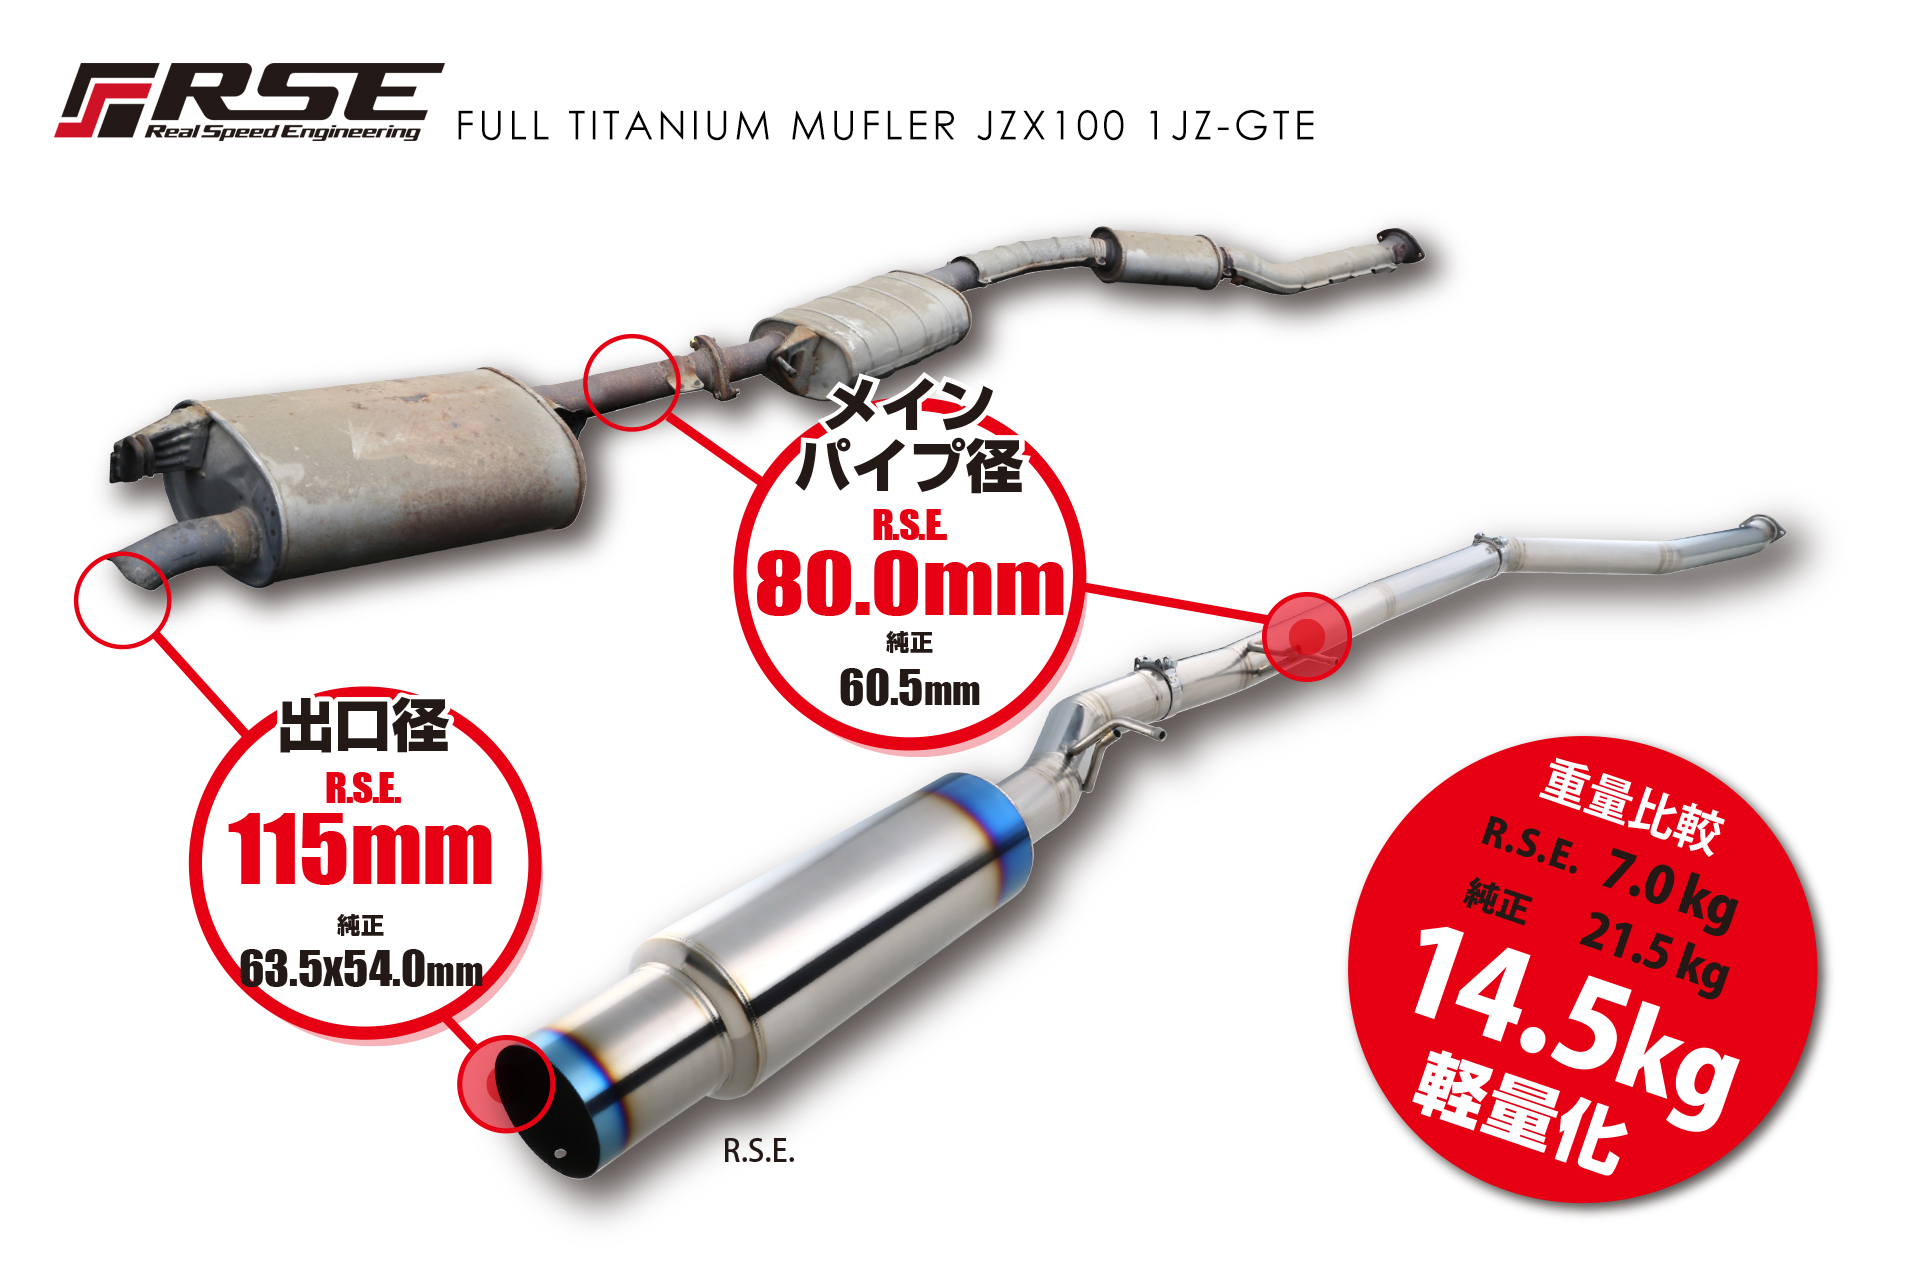 R.S.E フルチタンマフラー  トヨタ JZX100 1JZ-GTE  RB6090-TY04A